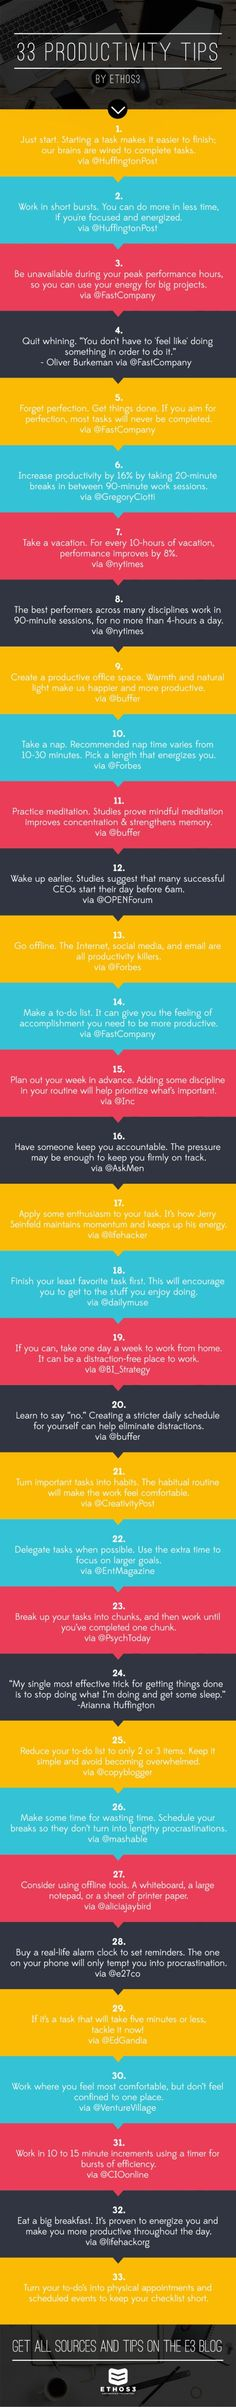 33 Productivity Tips, in 140 Characters or Less by Ethos3 | Presentation Design and Training via slideshare